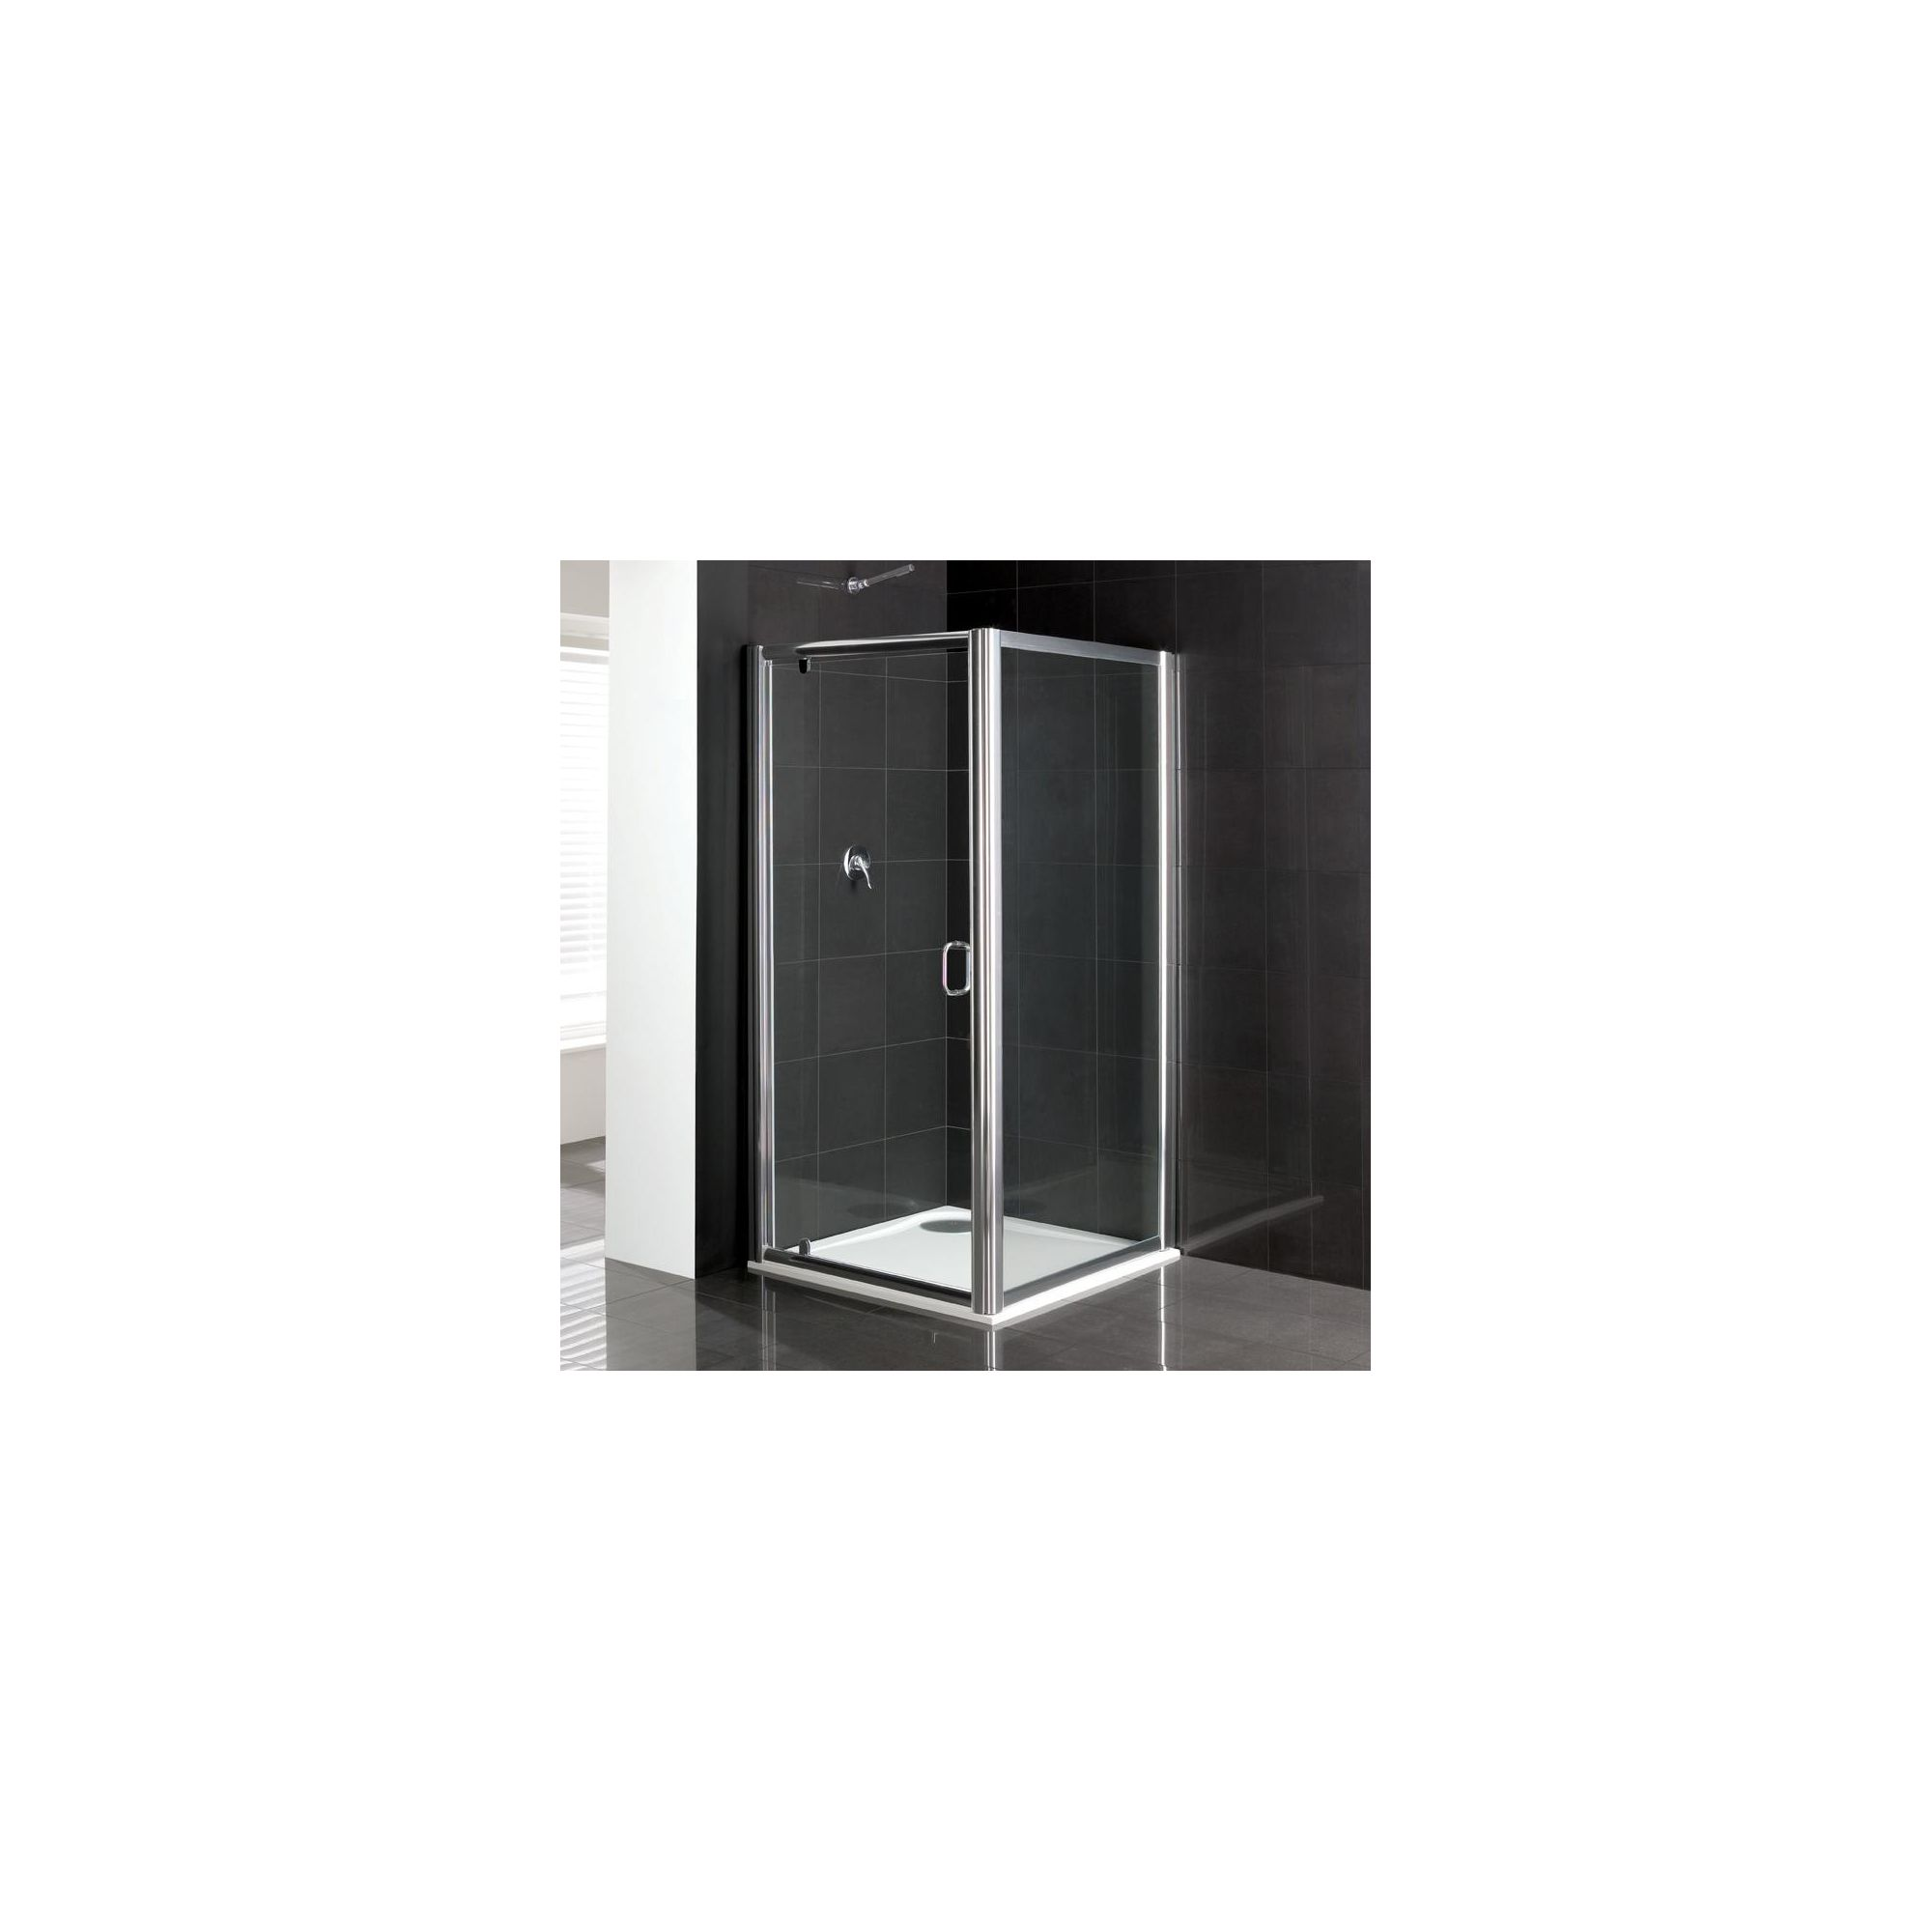 Duchy Elite Silver Pivot Door Shower Enclosure, 900mm x 900mm, Standard Tray, 6mm Glass at Tesco Direct